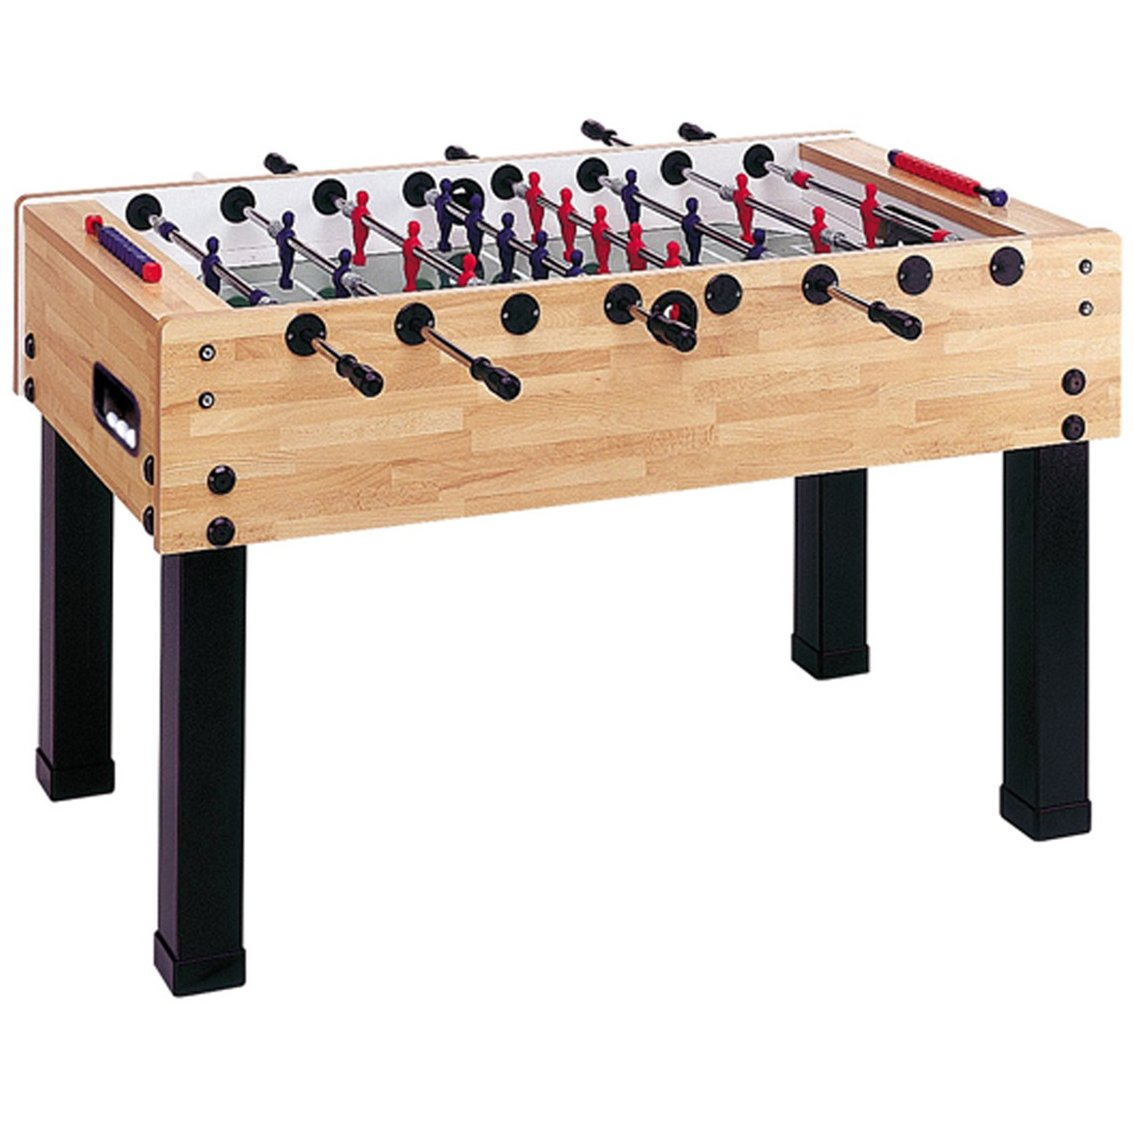 Superior Best Foosball Table Under $1000 U2013 $1200